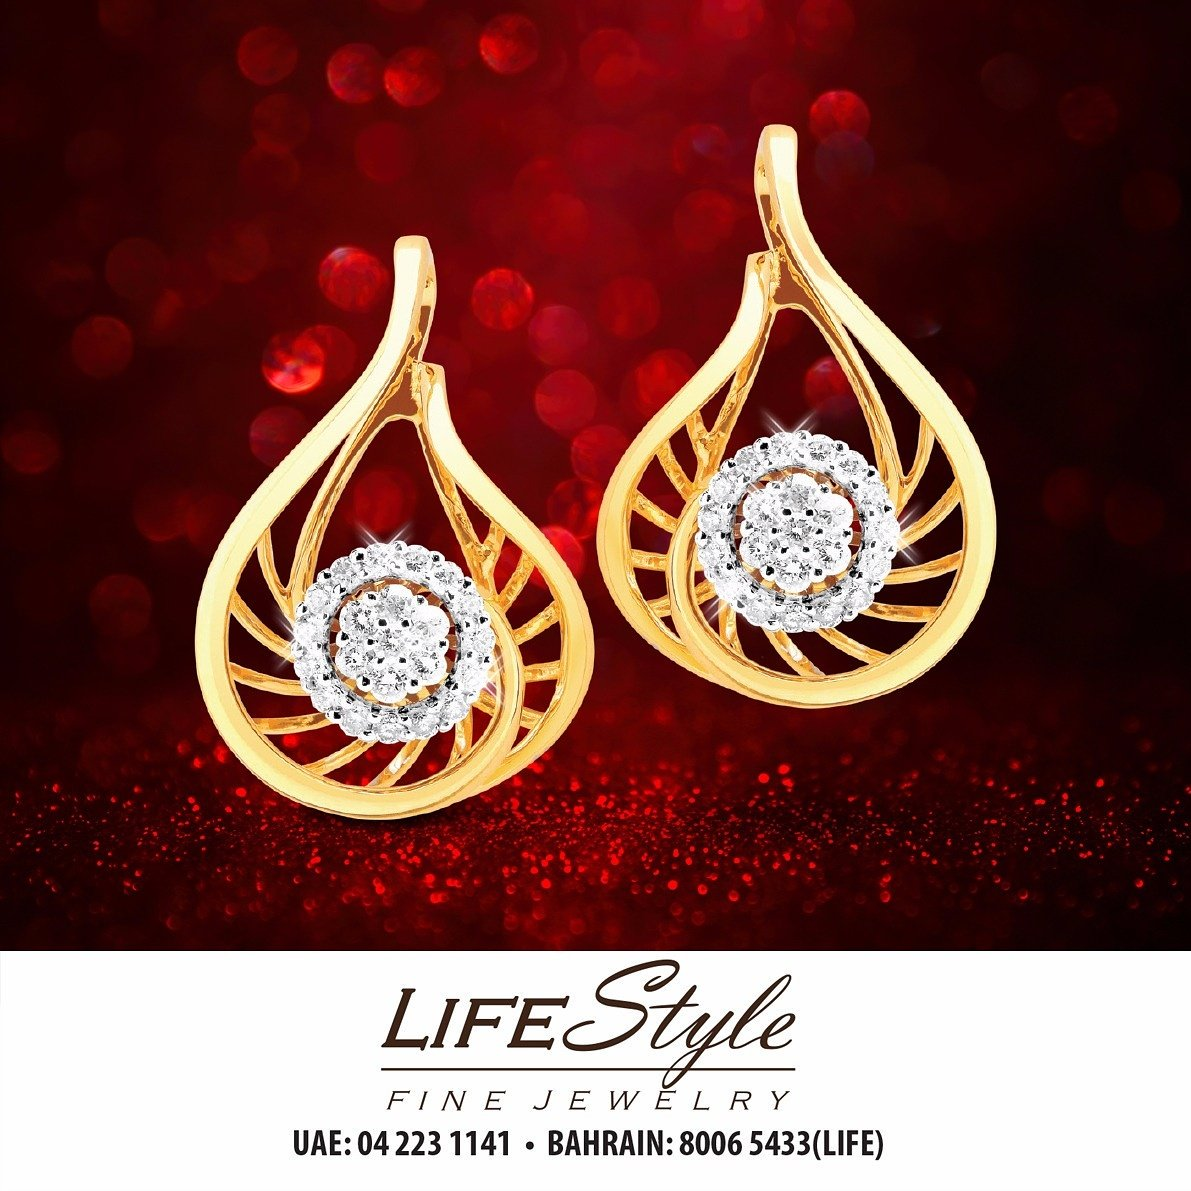 A Classic at first glance! #Diamond #Earrings for  Aed2,495 from #LifestyleFineJewelry outlets  #accessories #style #dxb #jewelry #classic<br>http://pic.twitter.com/8iwQJdPgZM